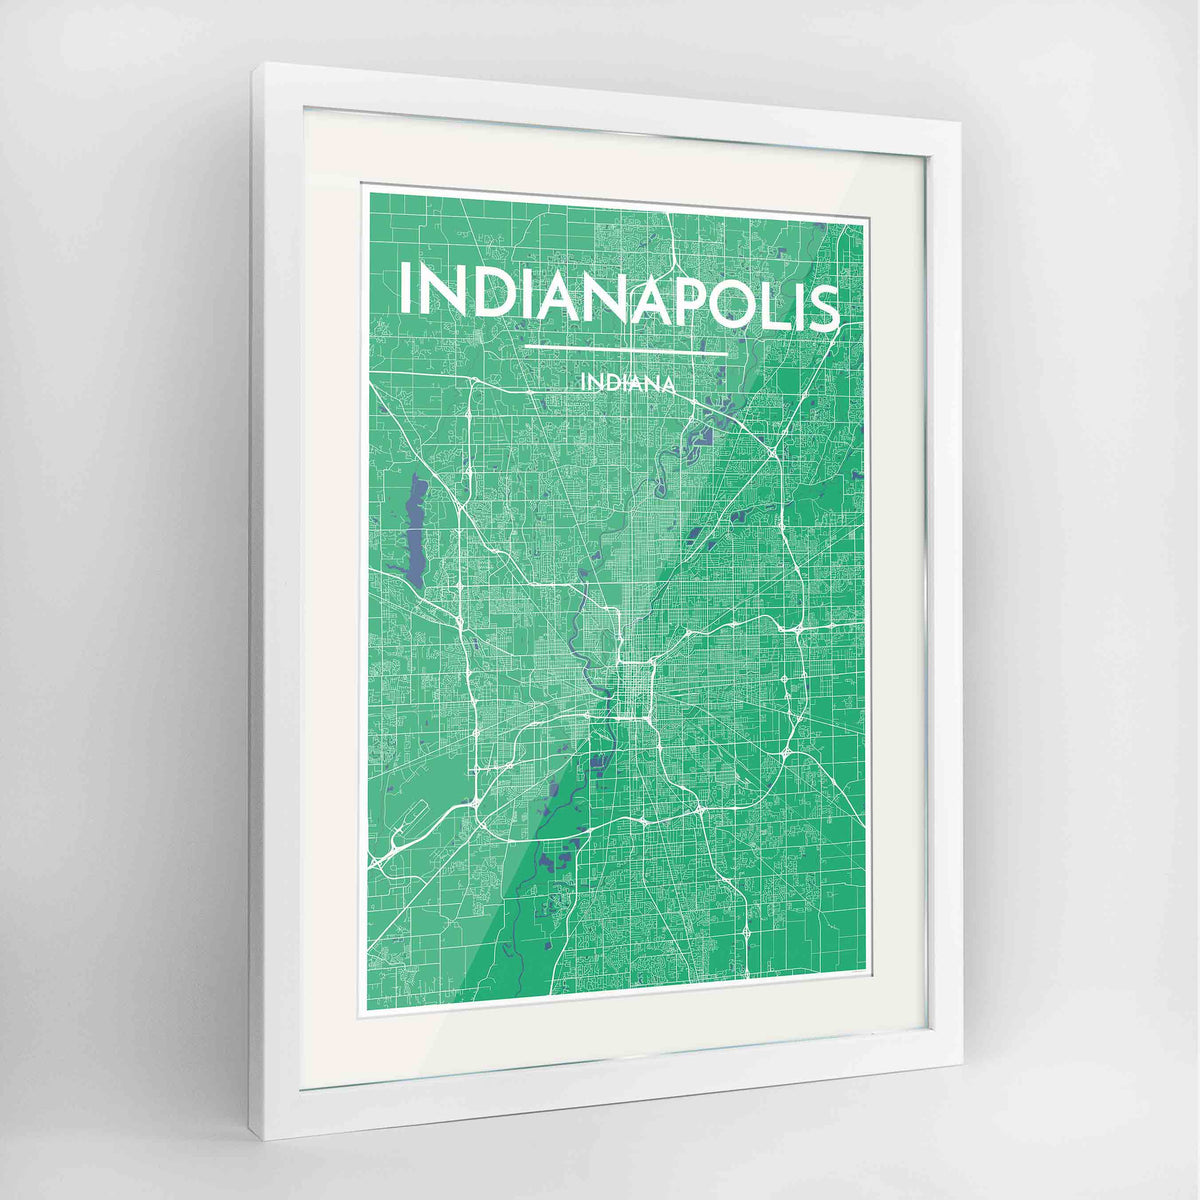 "Framed Indianapolis Map Art Print 24x36"" Contemporary White frame Point Two Design Group"